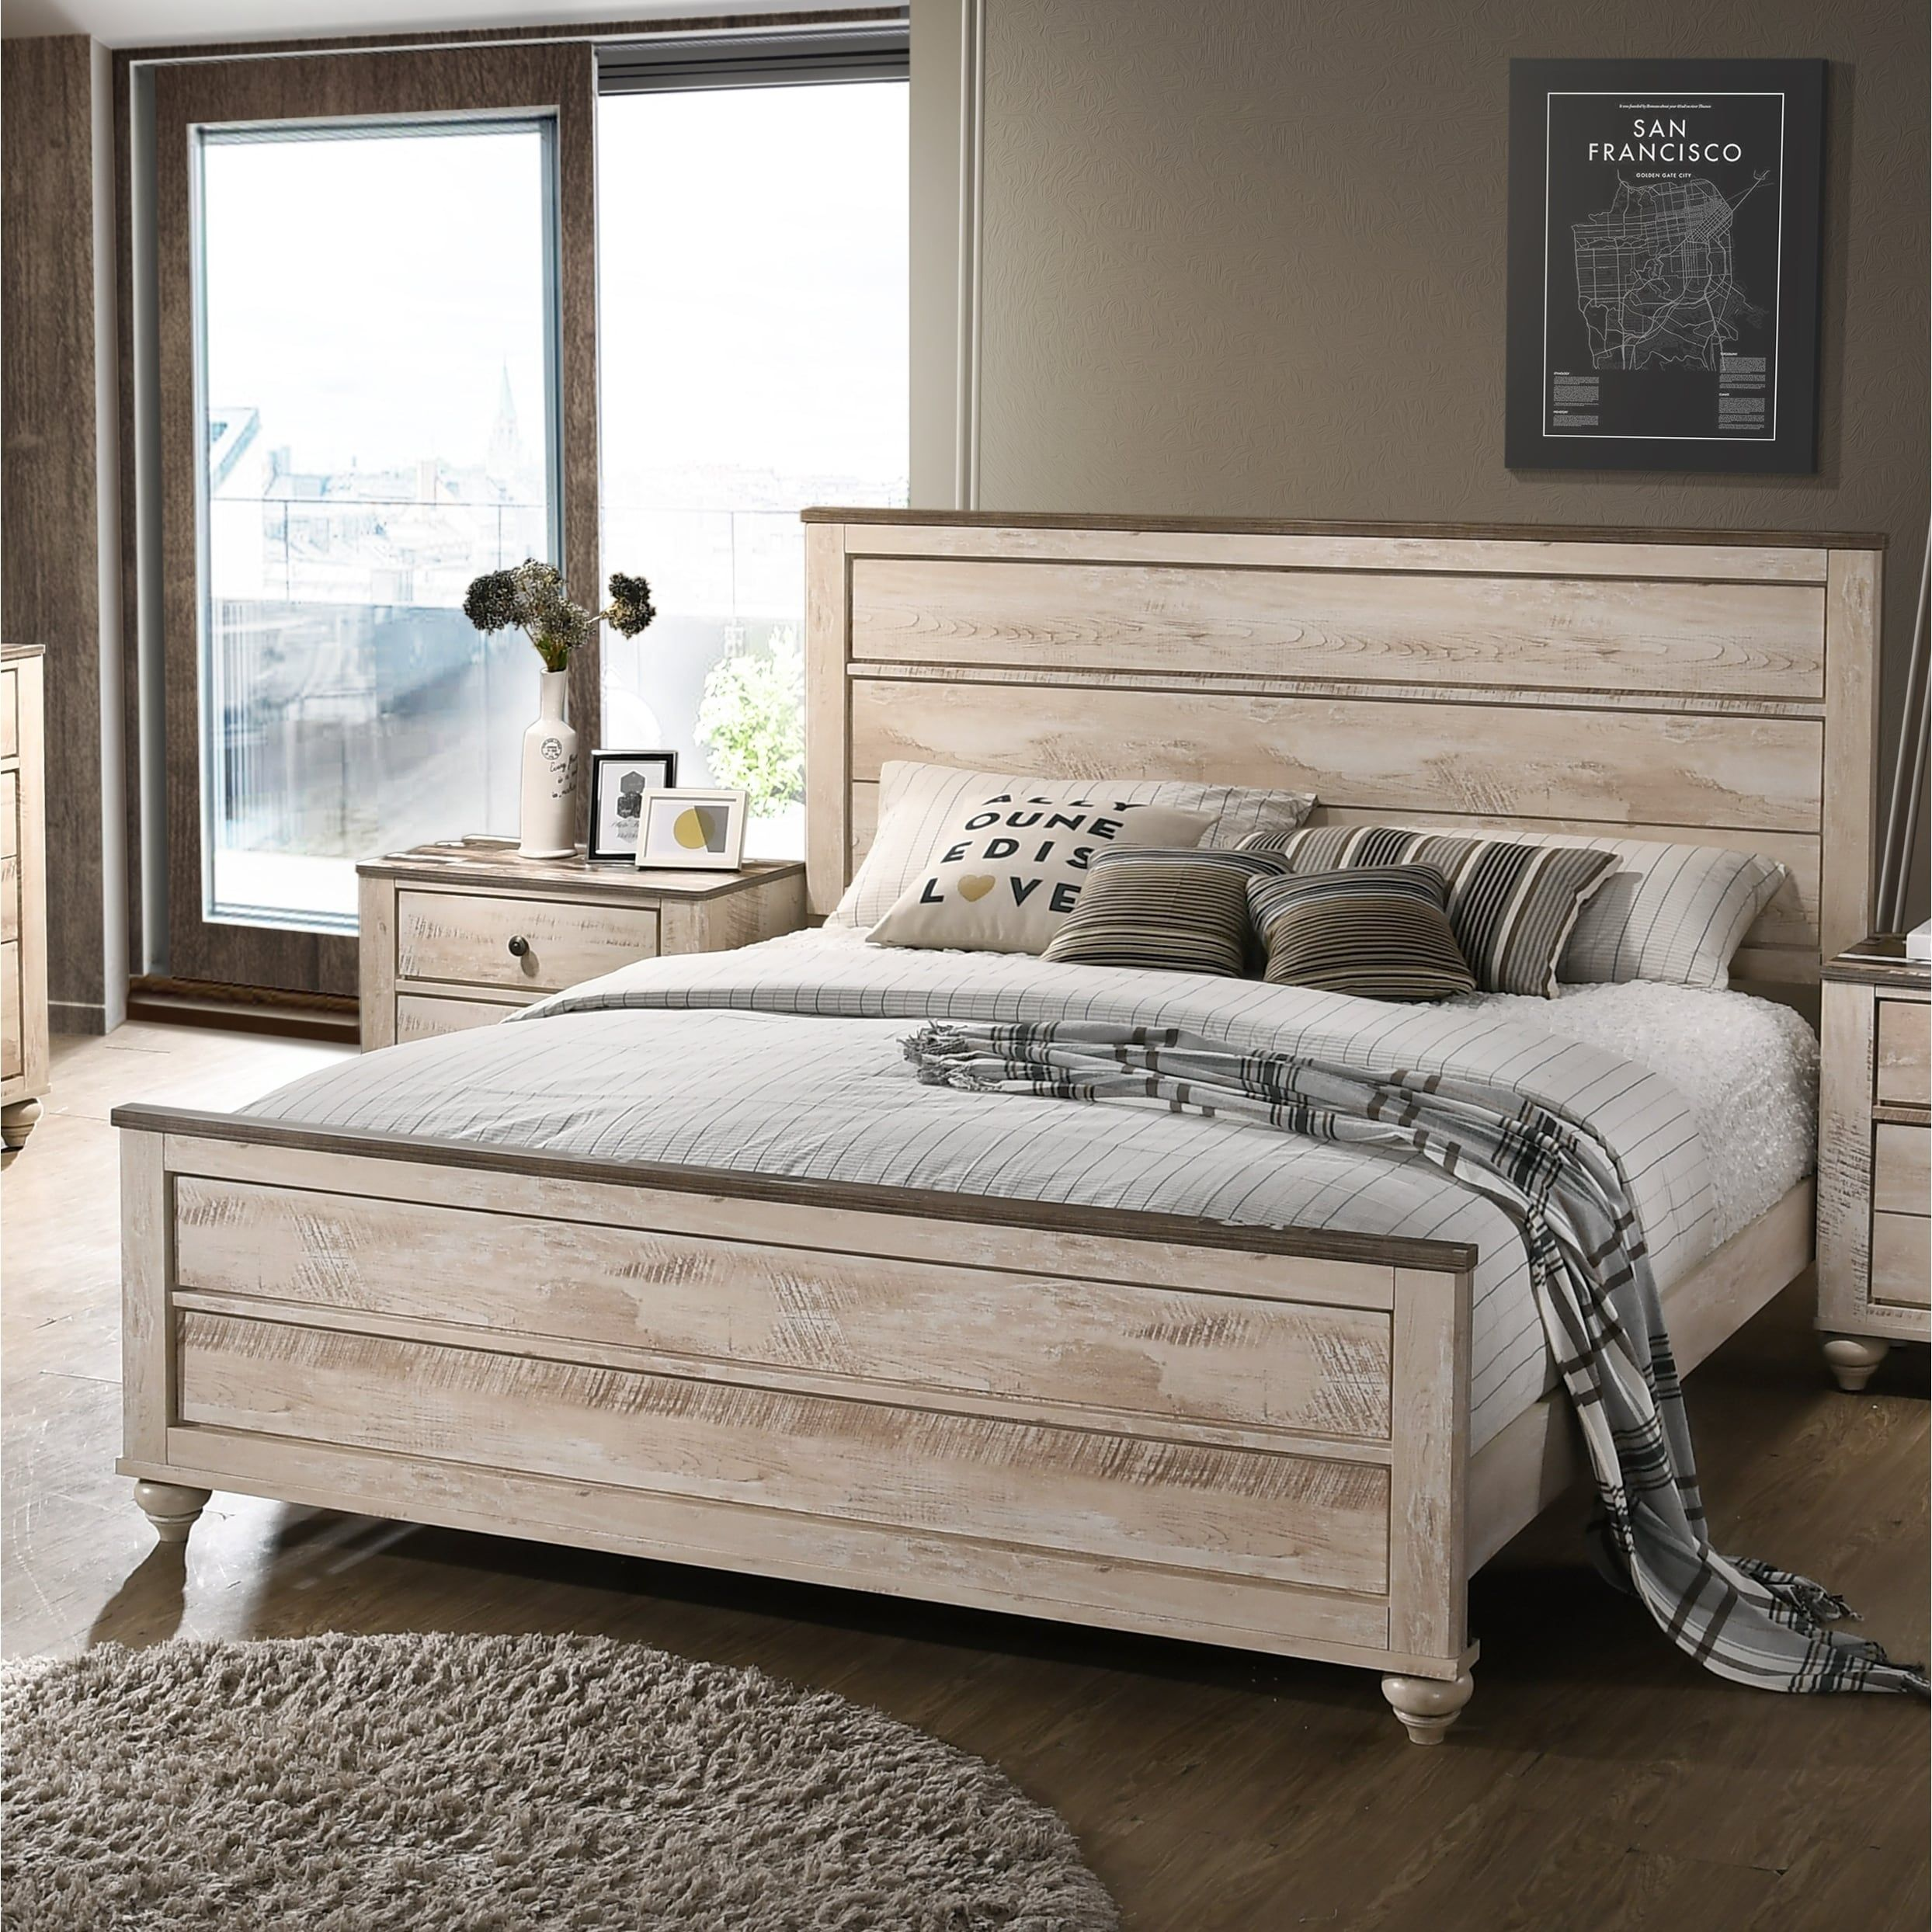 Imerland Contemporary White Wash Finish Panel Bed (Queen ...